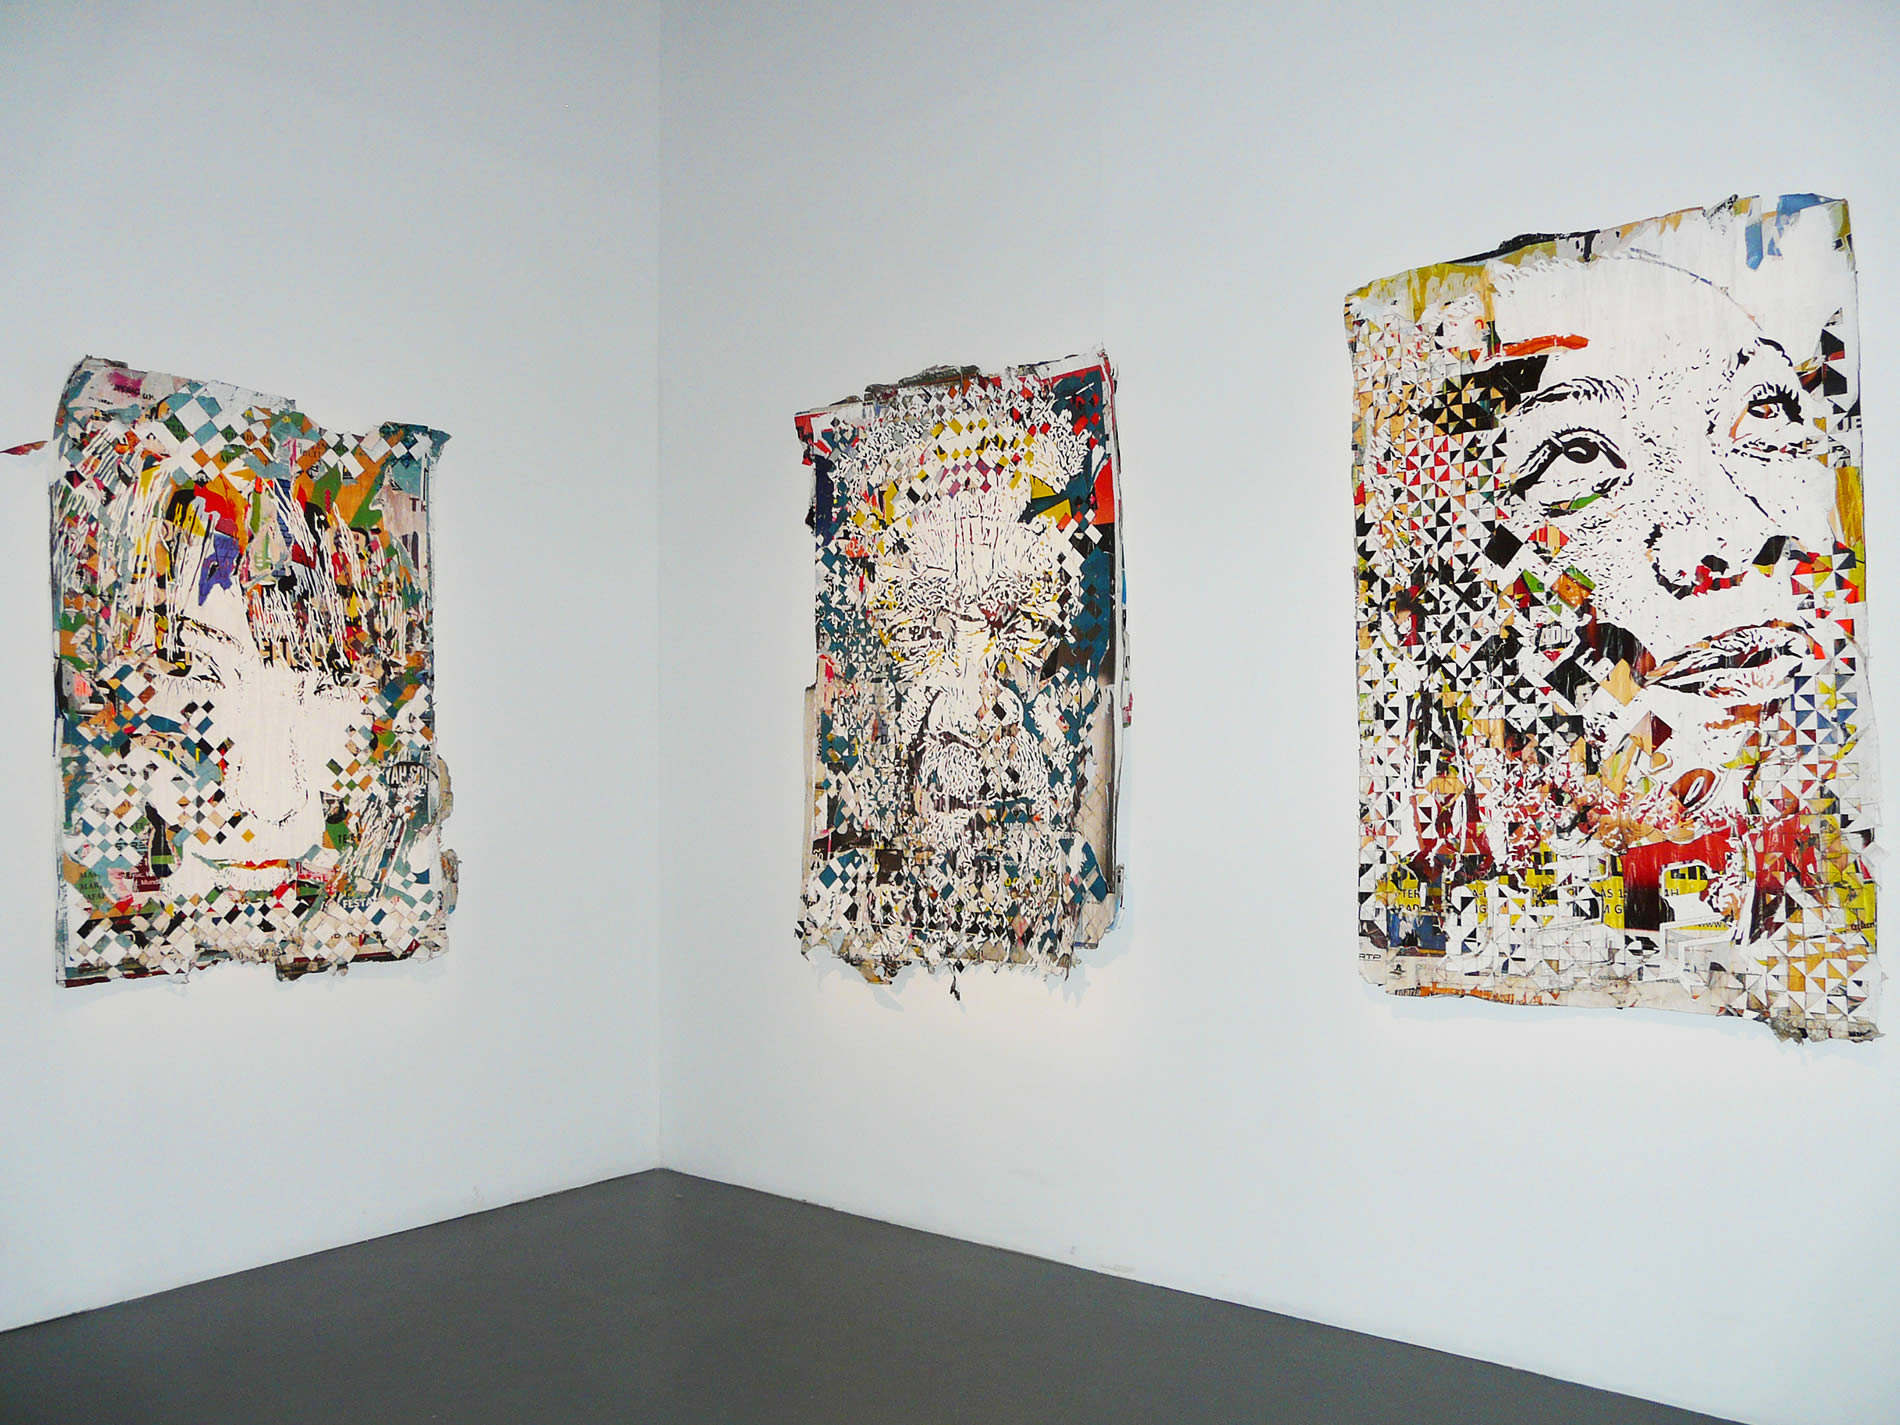 portraits cutout-collage by vhils